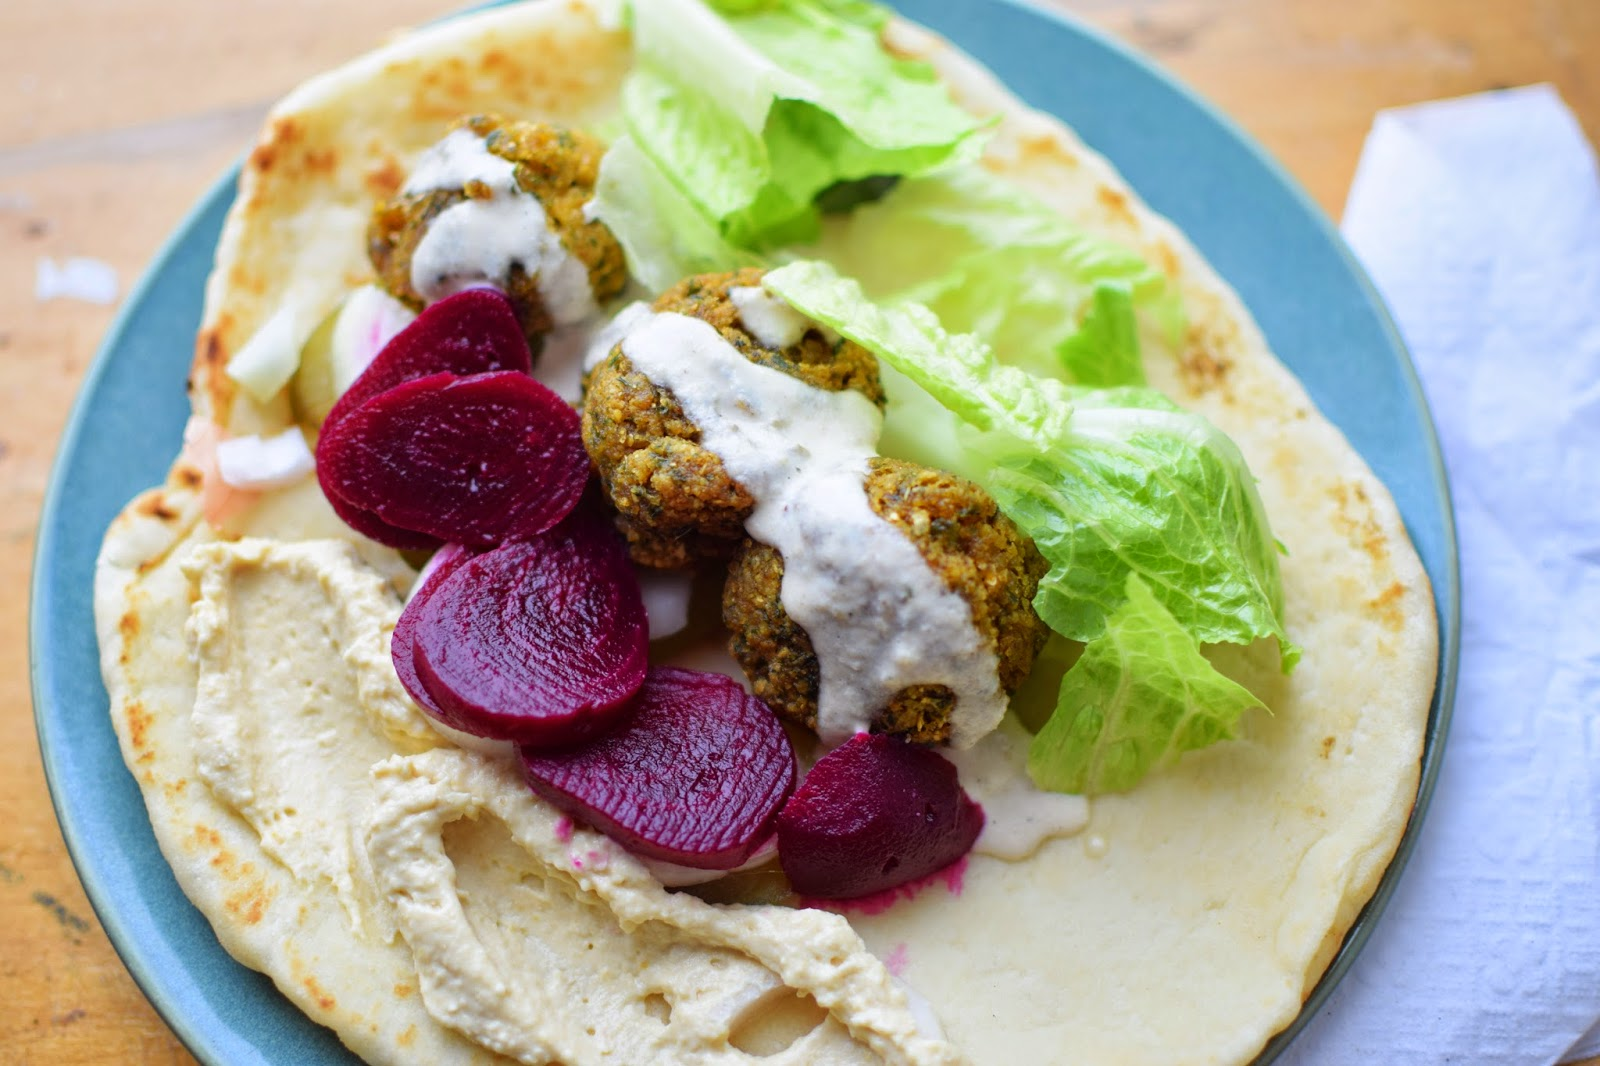 Vegan Falafel With Tahini Sauce